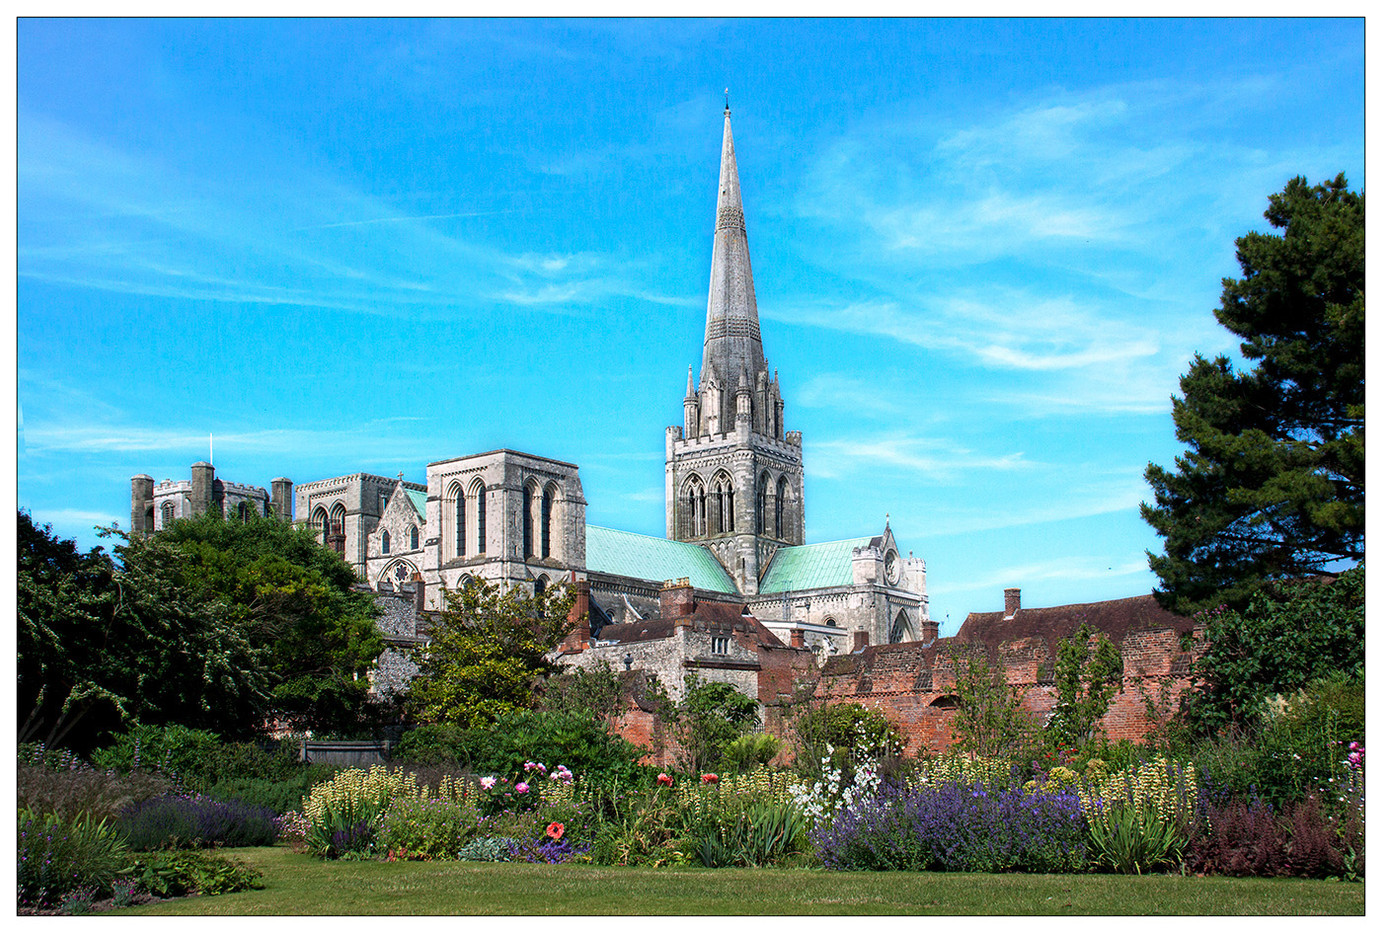 CATHEDRAL GARDEN by Mike Hart